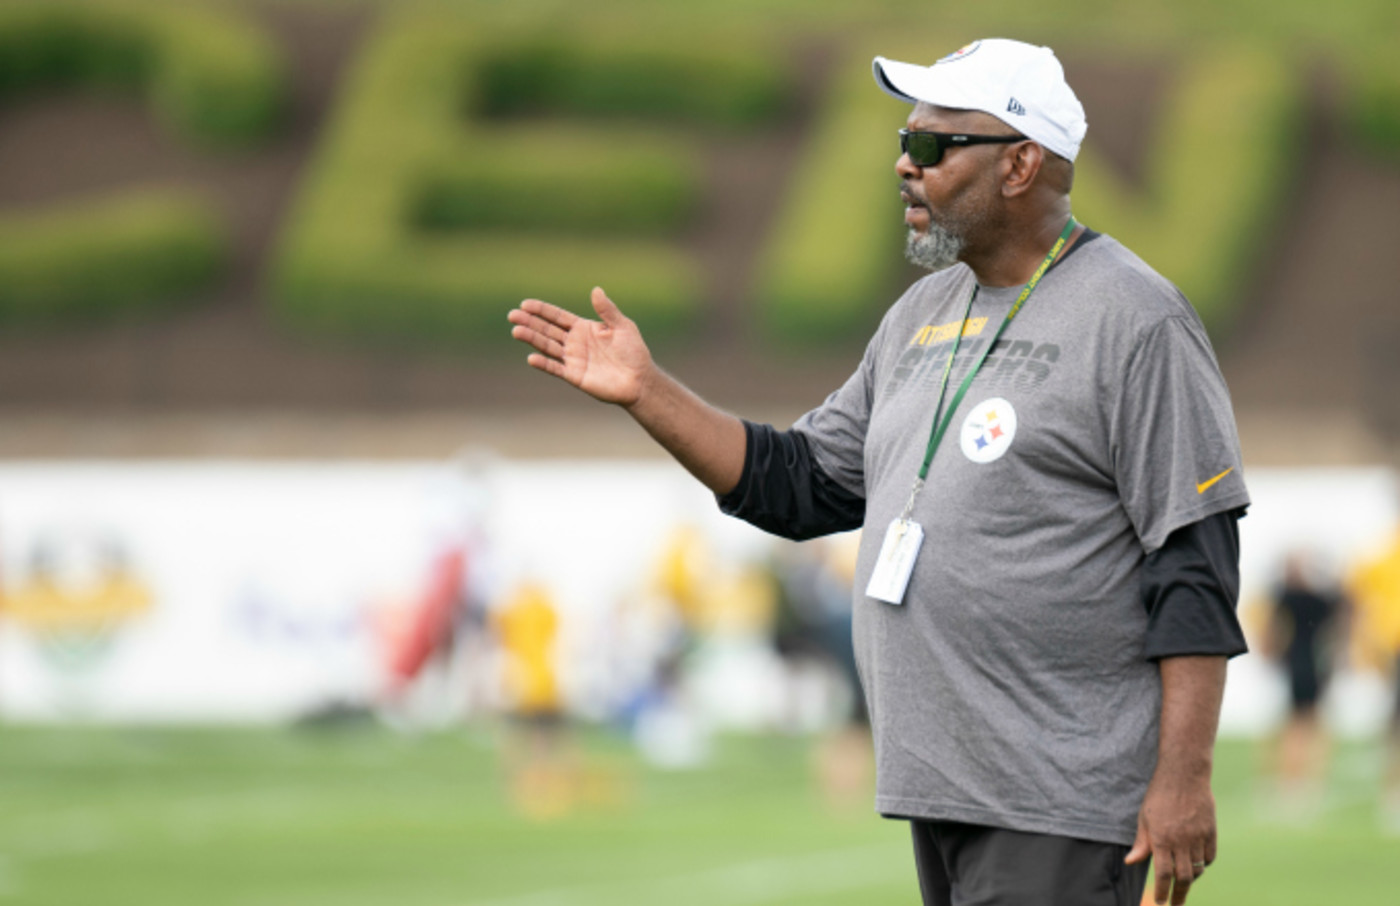 Pittsburgh Steelers Wide Receivers Coach Darryl Drake